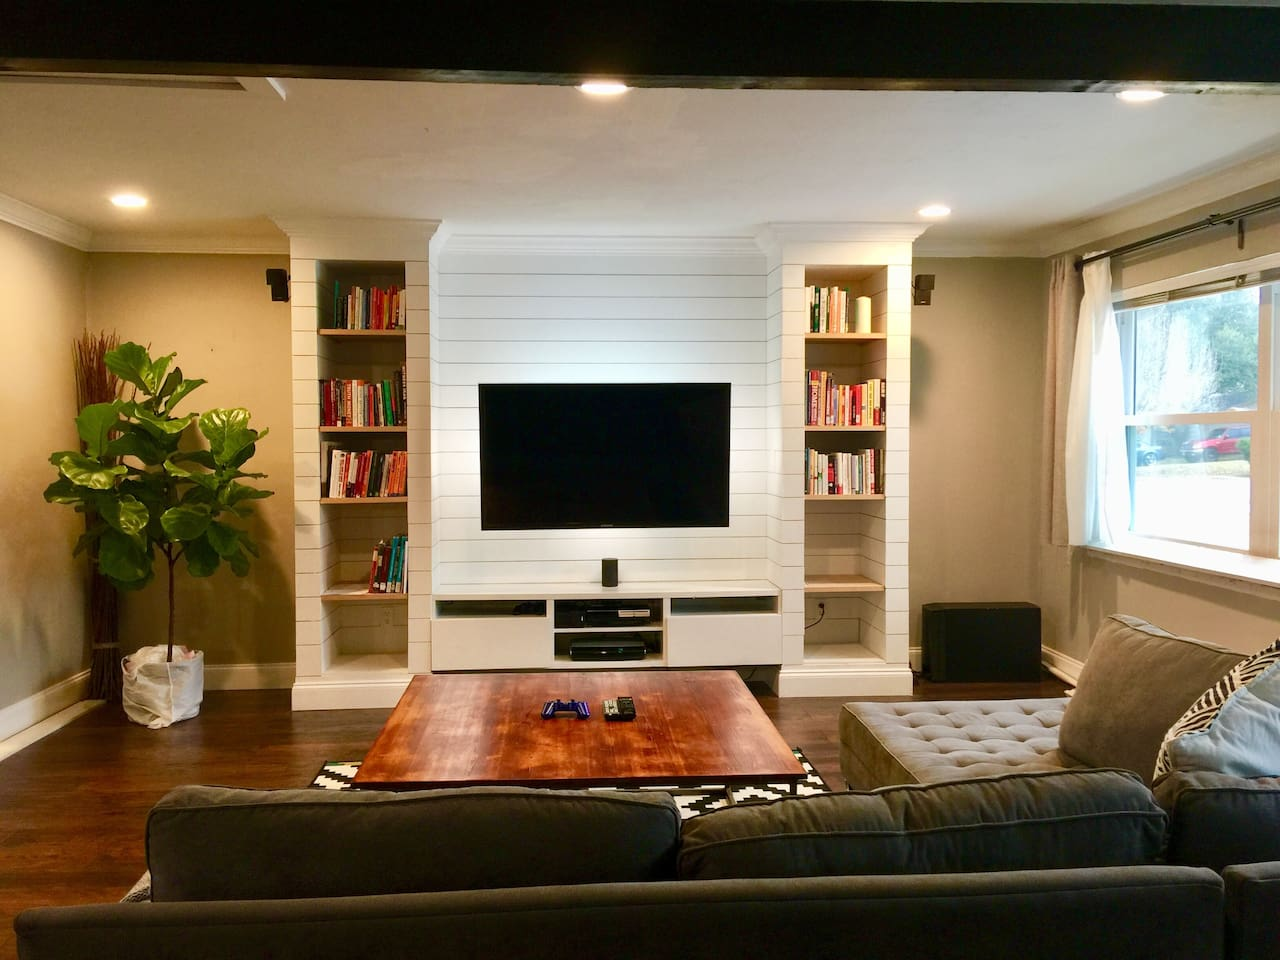 Livingroom with comfortable couch and relaxing atmosphere